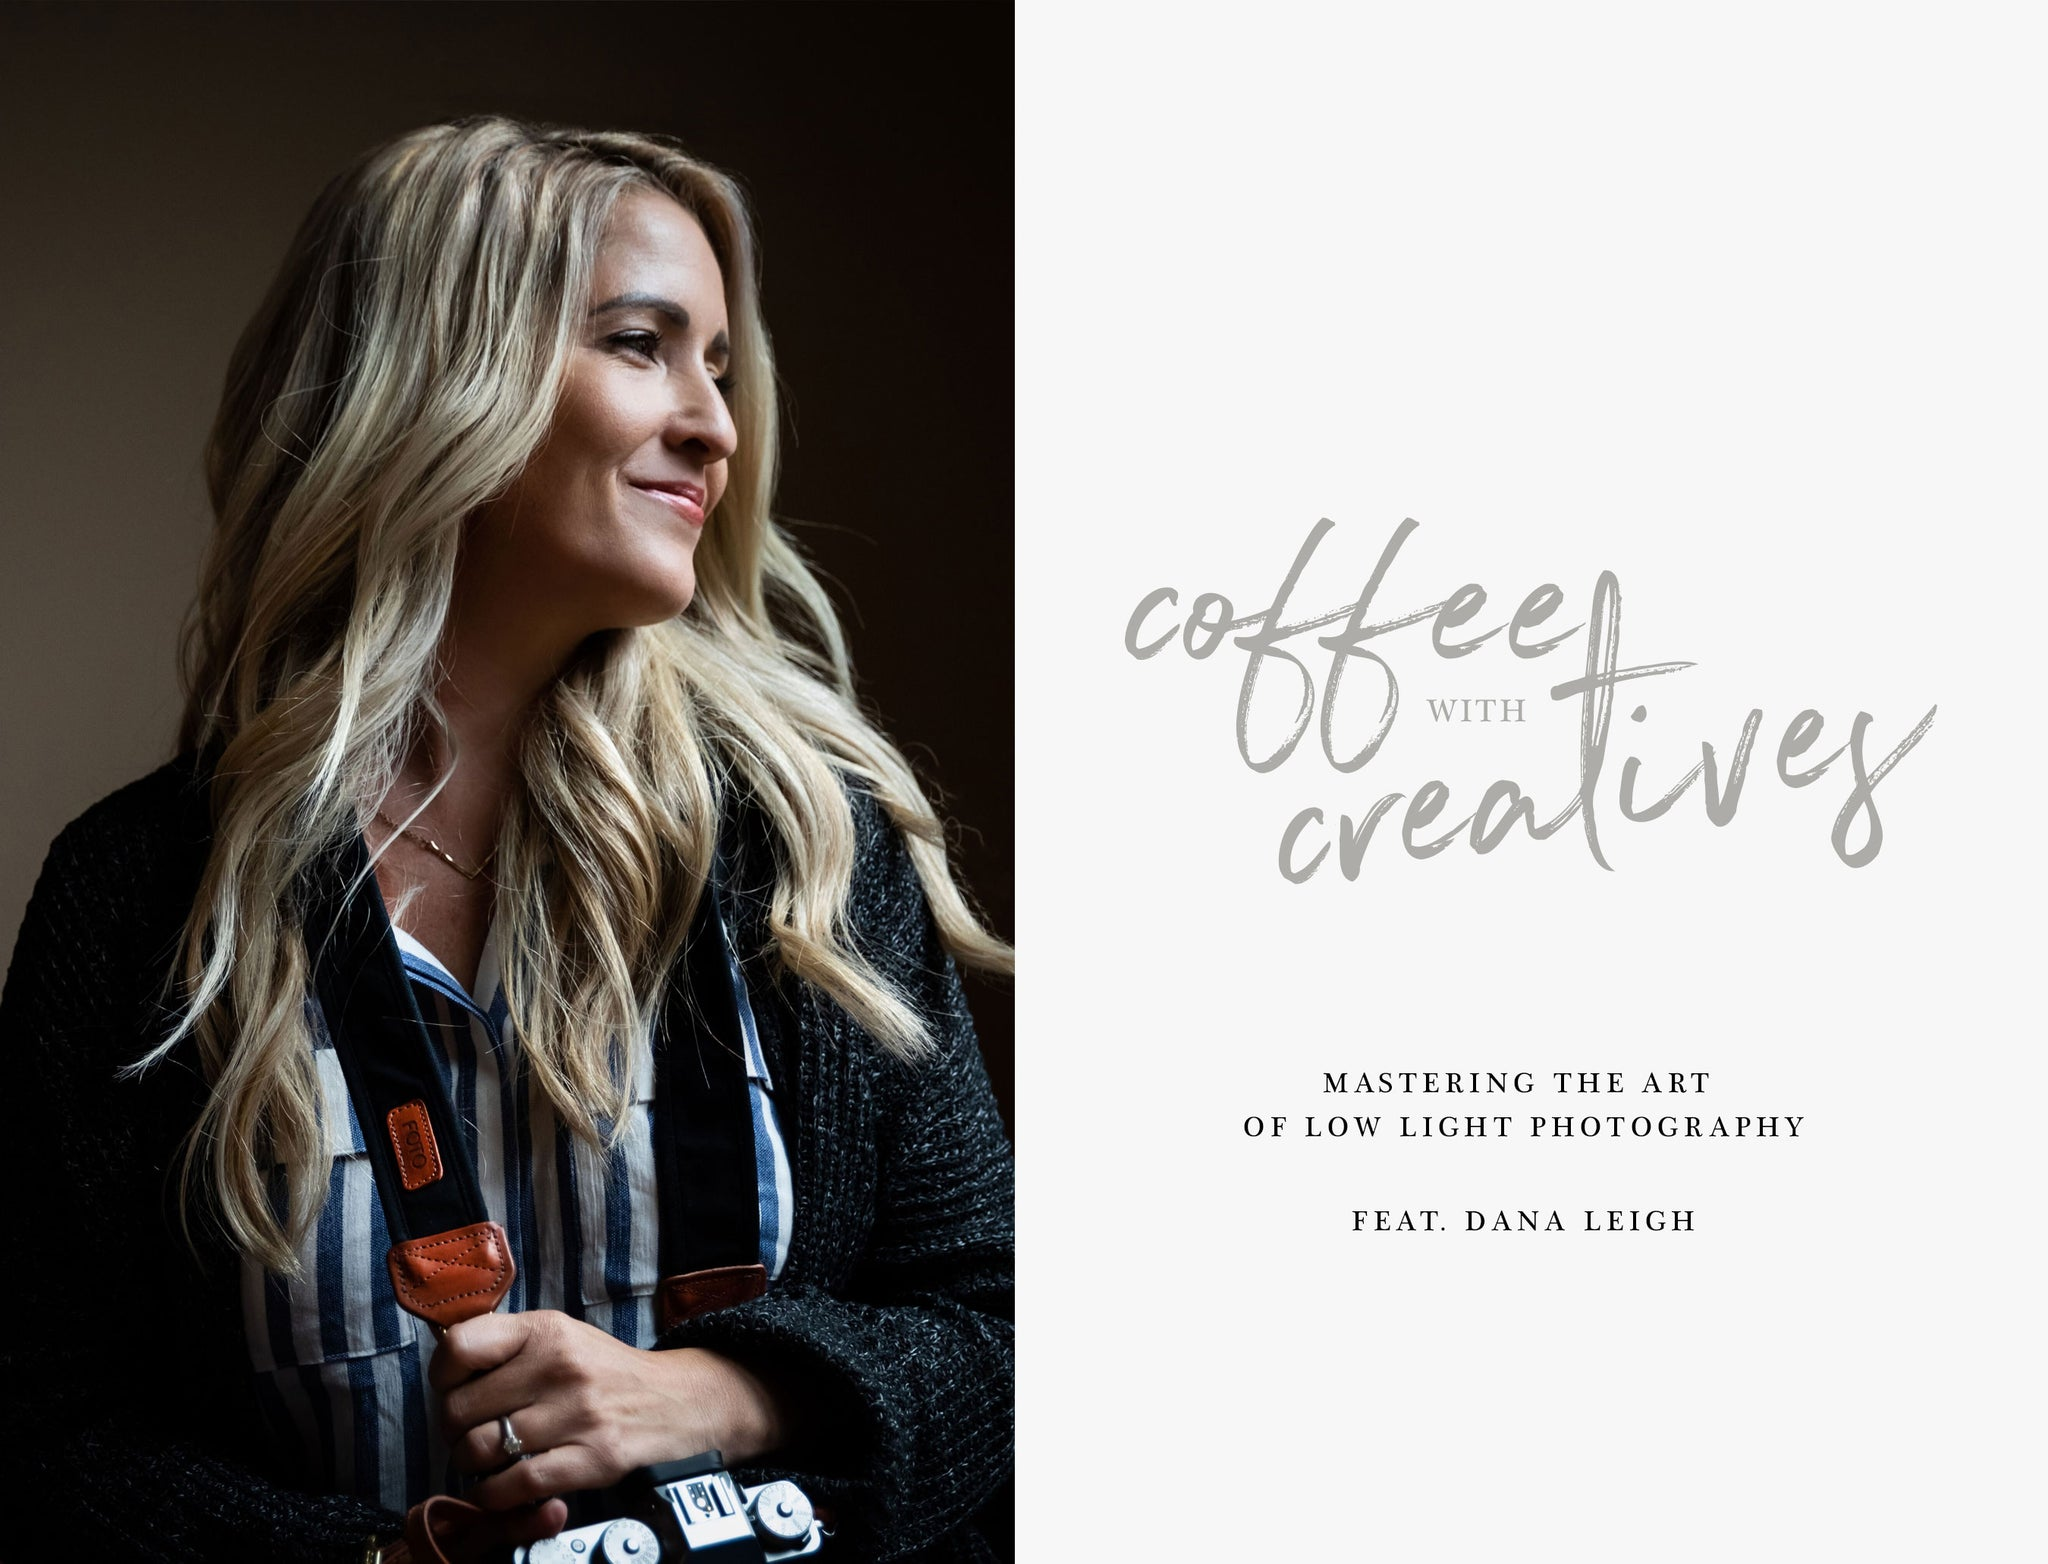 Coffee with Creatives: Mastering the Art of Low Light Photography with Dana Leigh